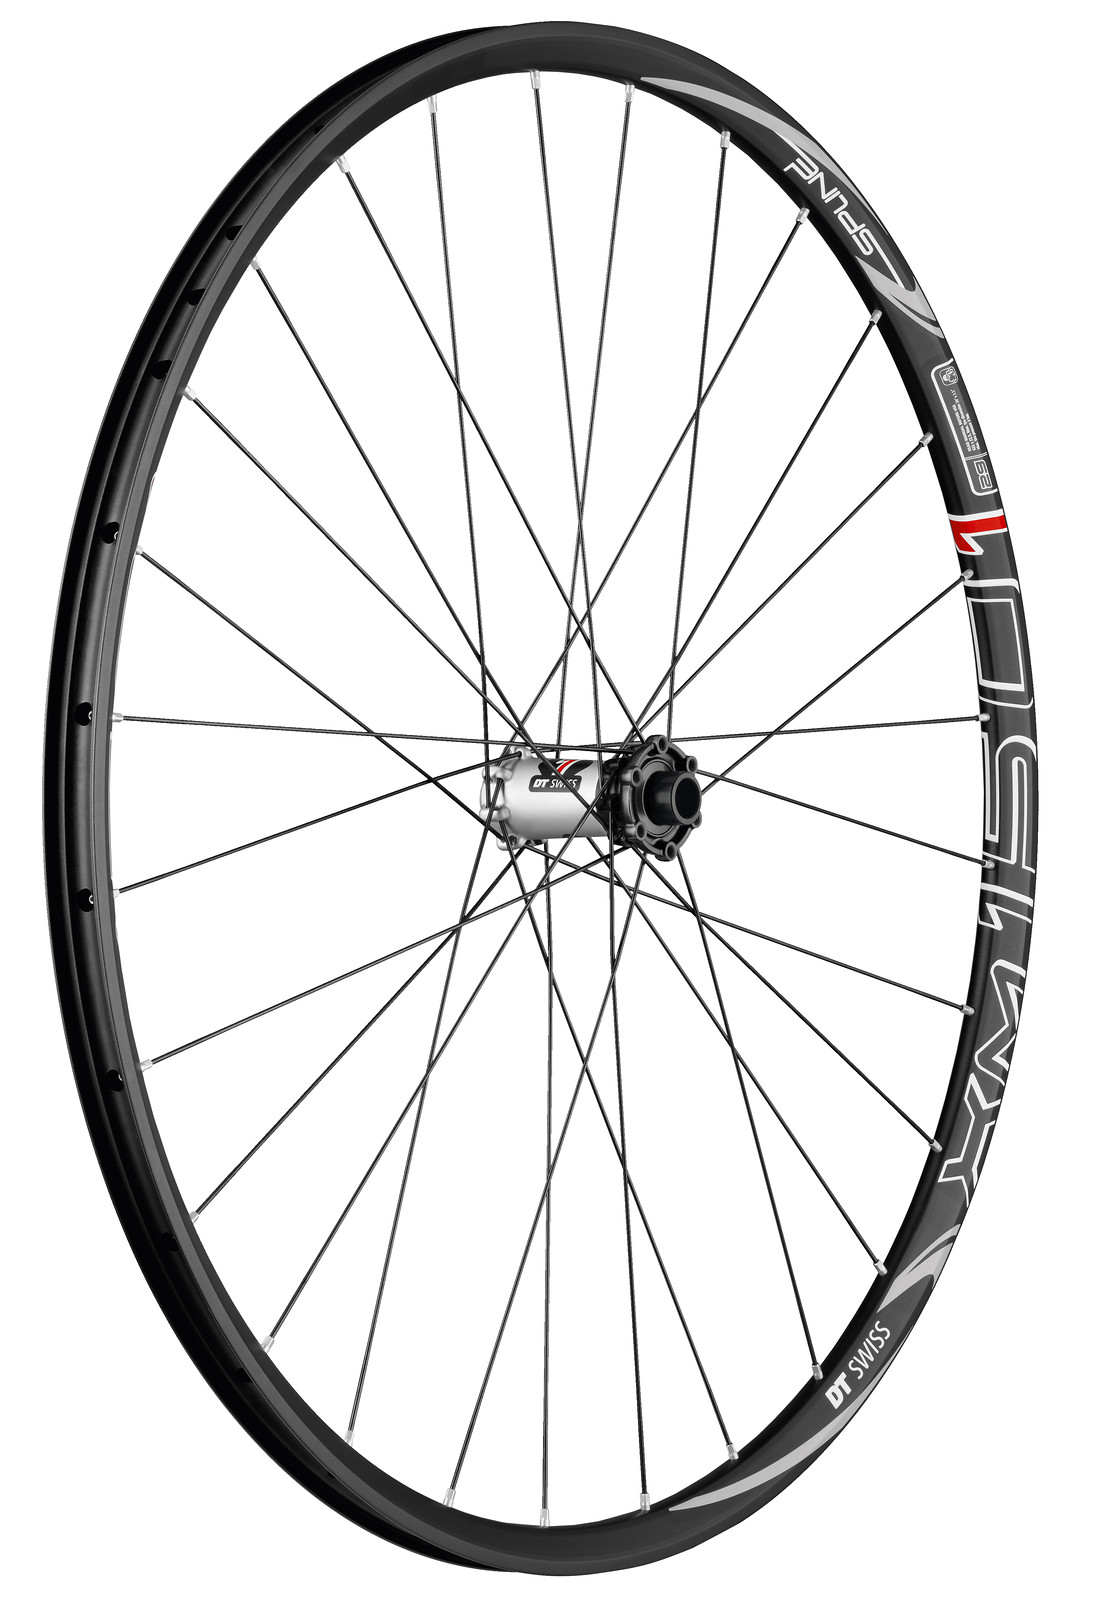 DT Swiss XM1501 Spline ONE 29 Complete Wheel XM_1501_SPLINE_ONE_29_BLACK_TA_15_100_FW_RGB